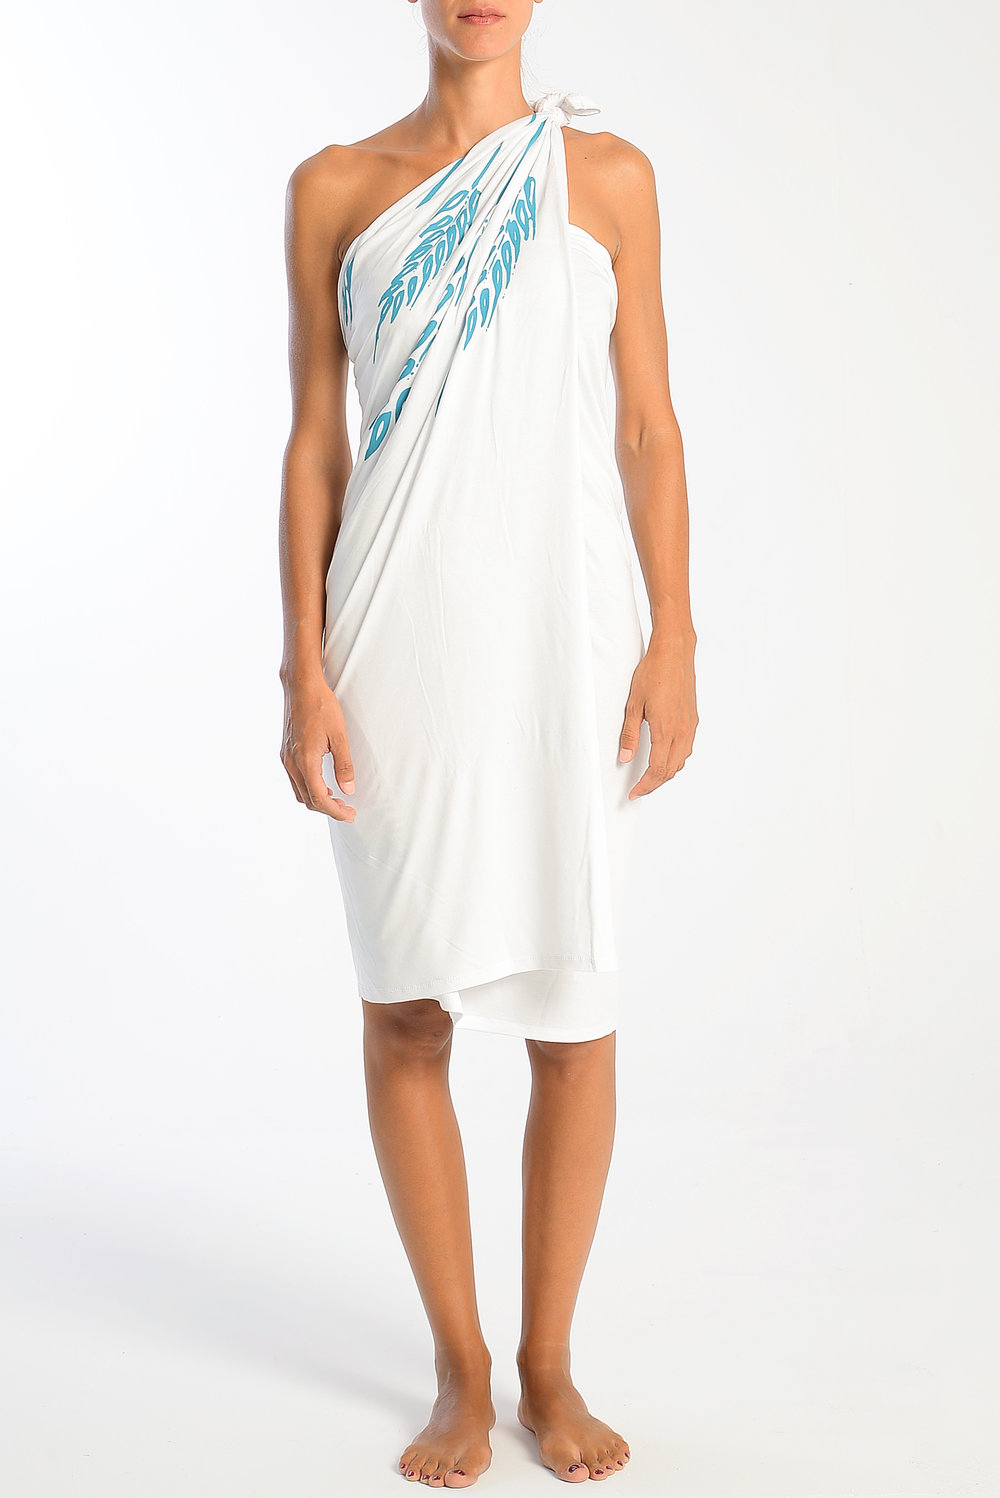 demetra-petrol-blue-on-white-viscose-wrap-as-one-shoulder-dress-front.jpg